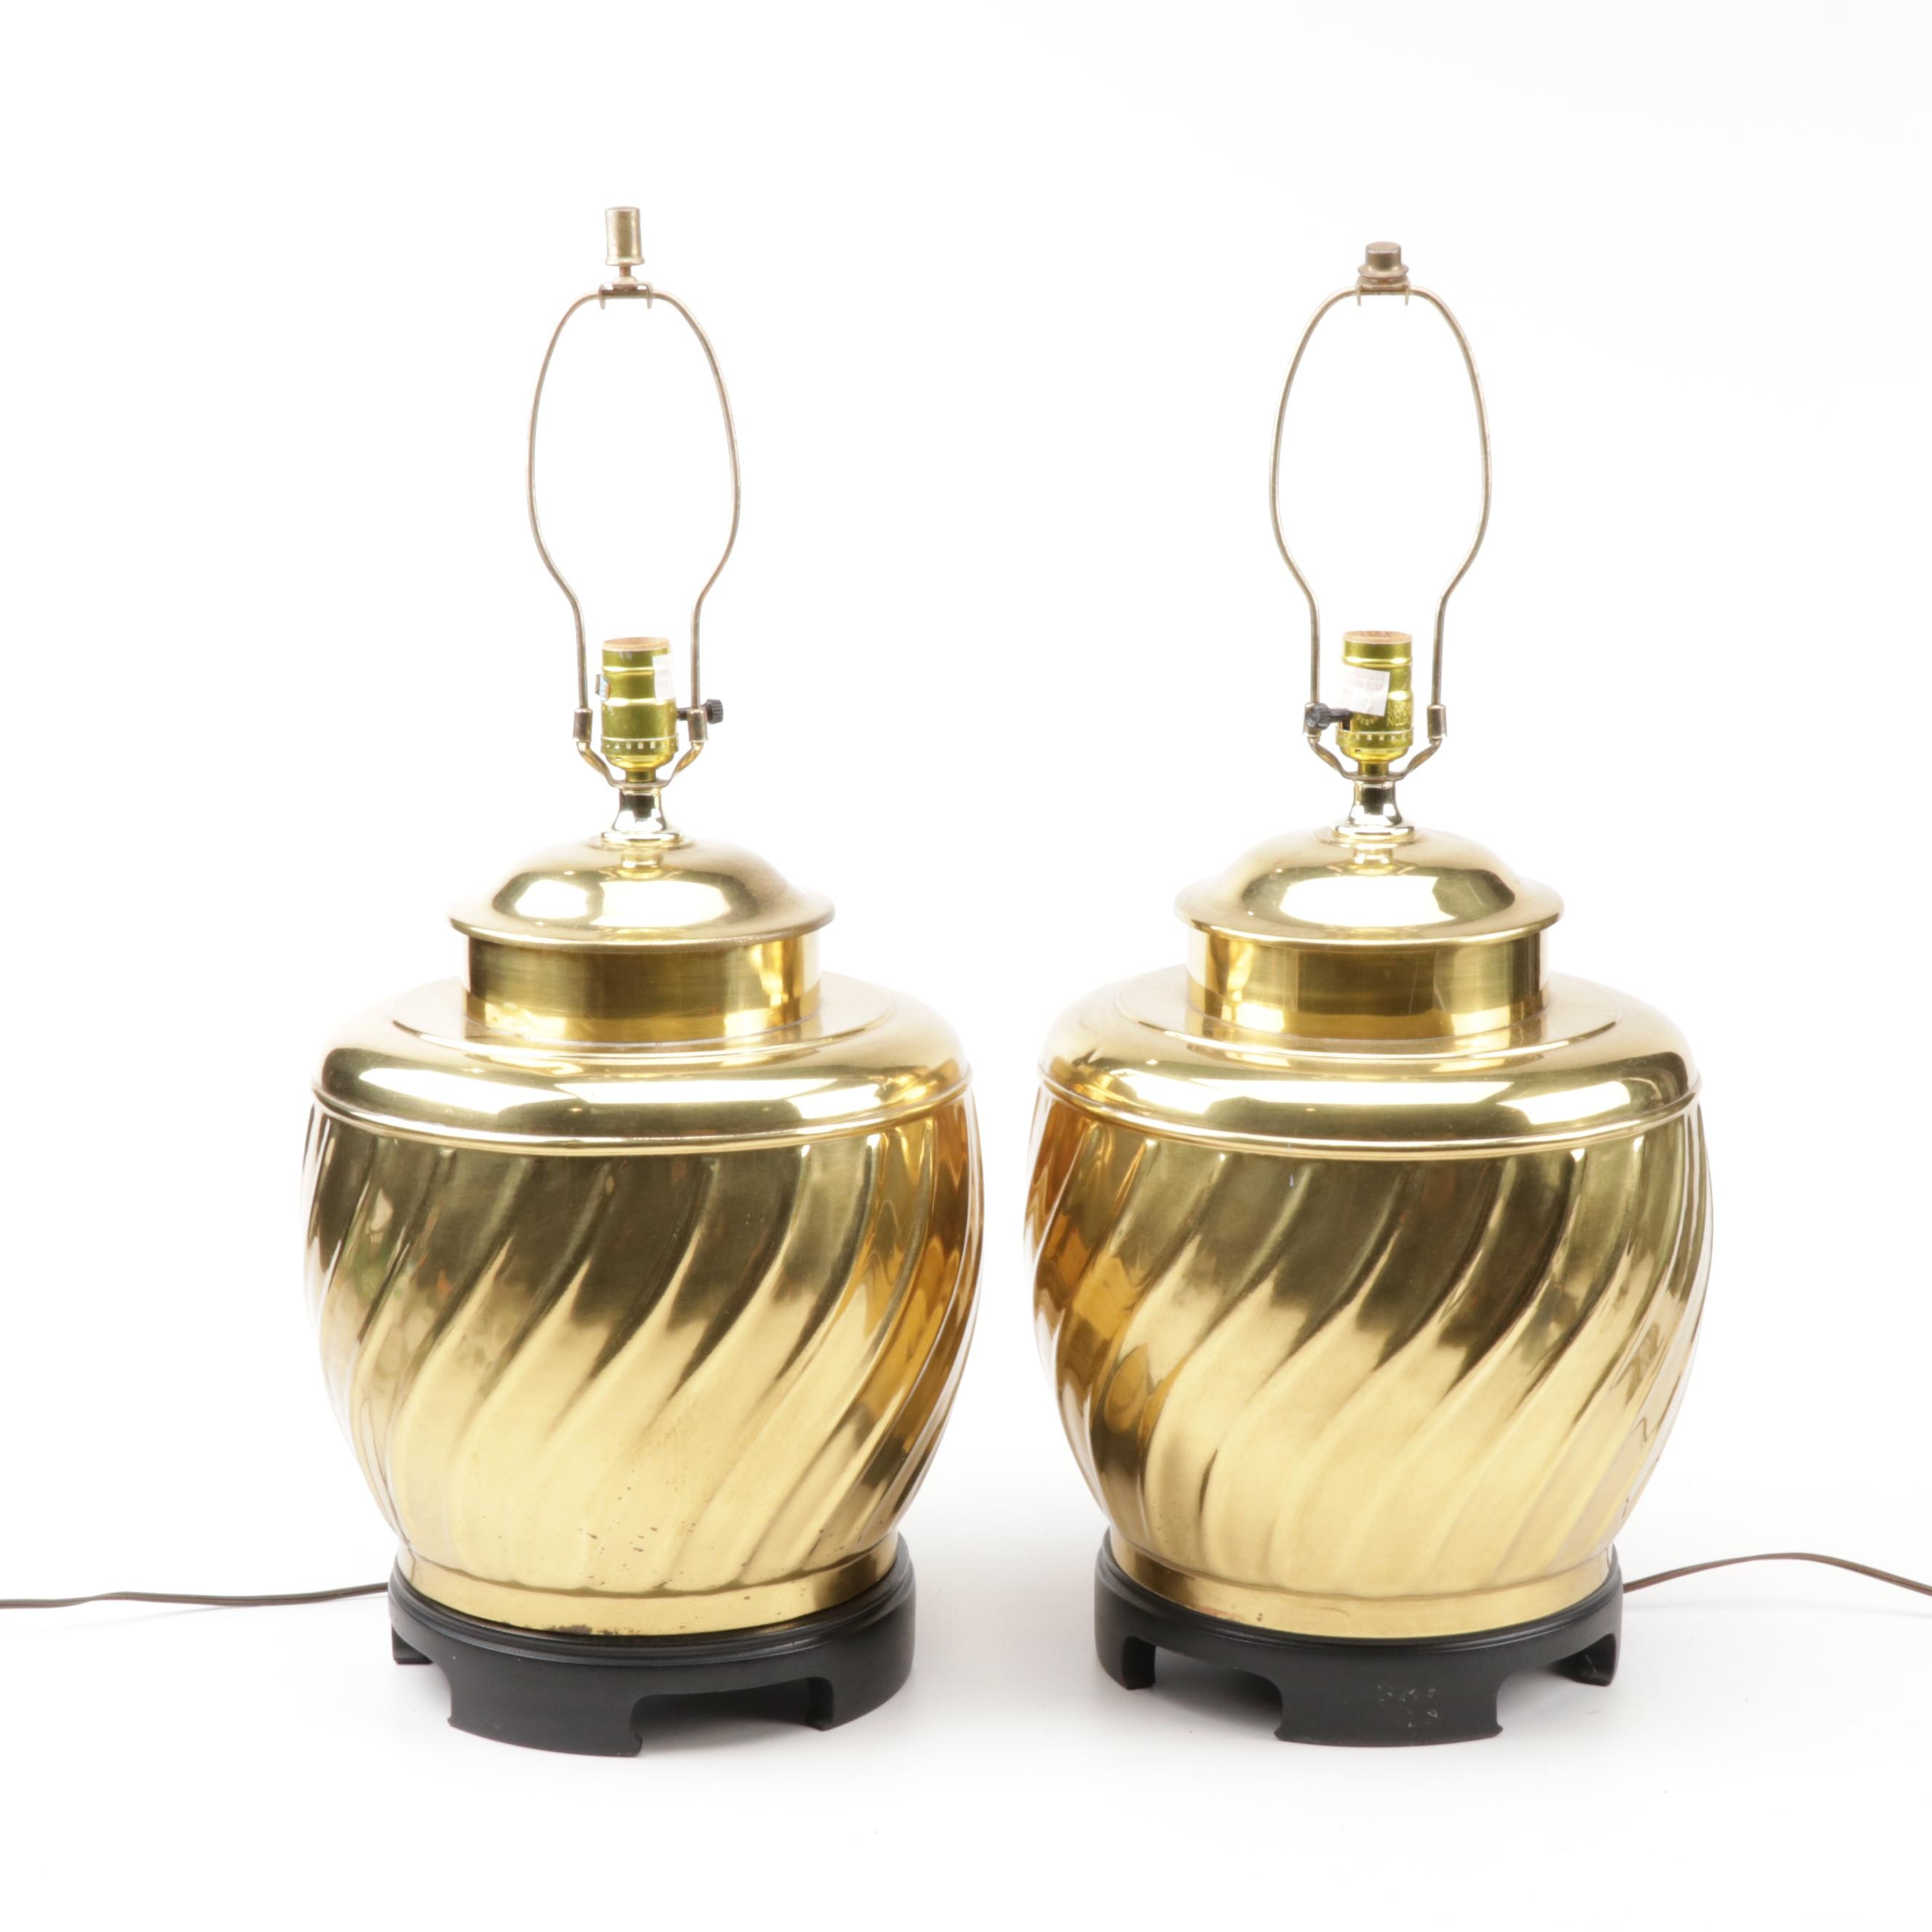 Swirled Brass Urn Table Lamps